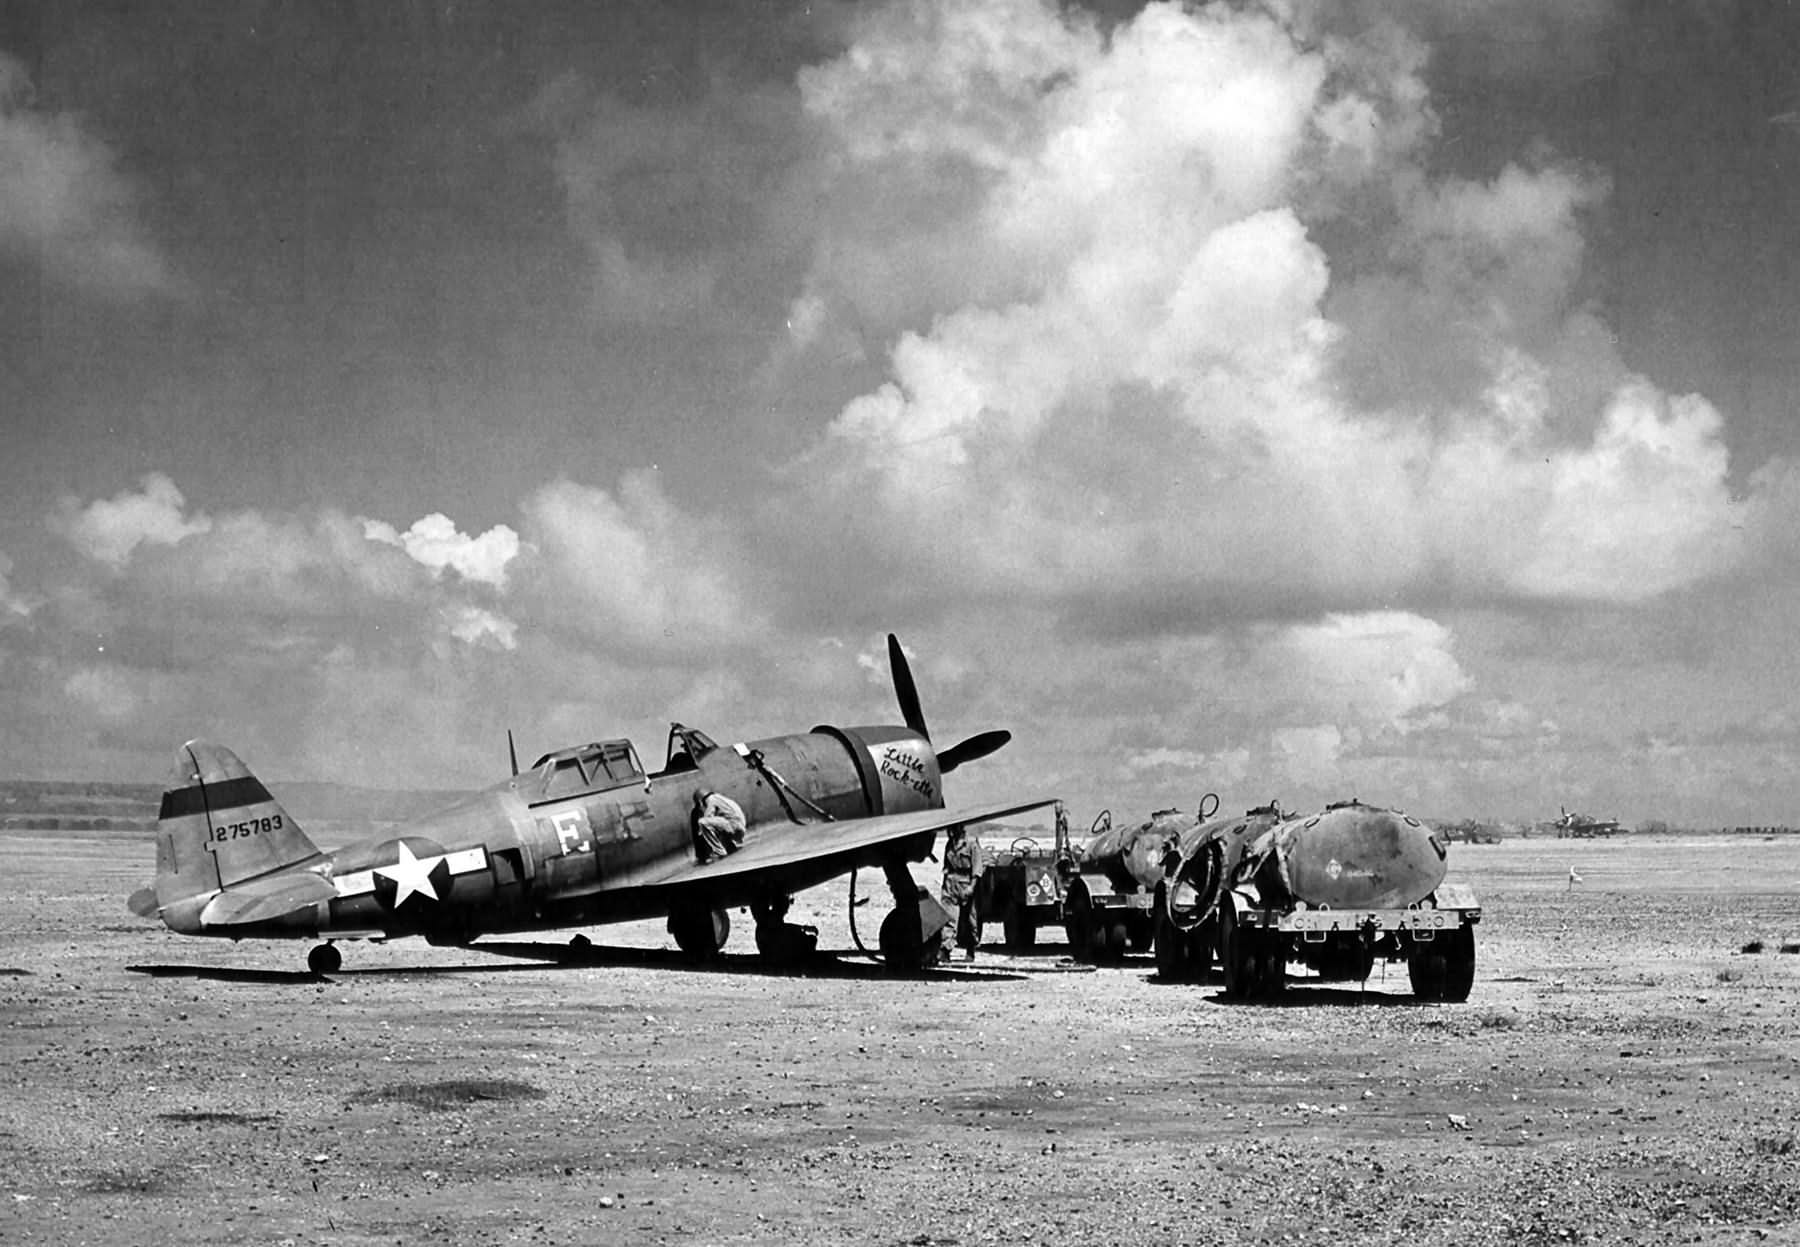 P-47D_42-75783_Little_Rock-ette_of_the_19th_FS_318th_FG_Saipan.jpg